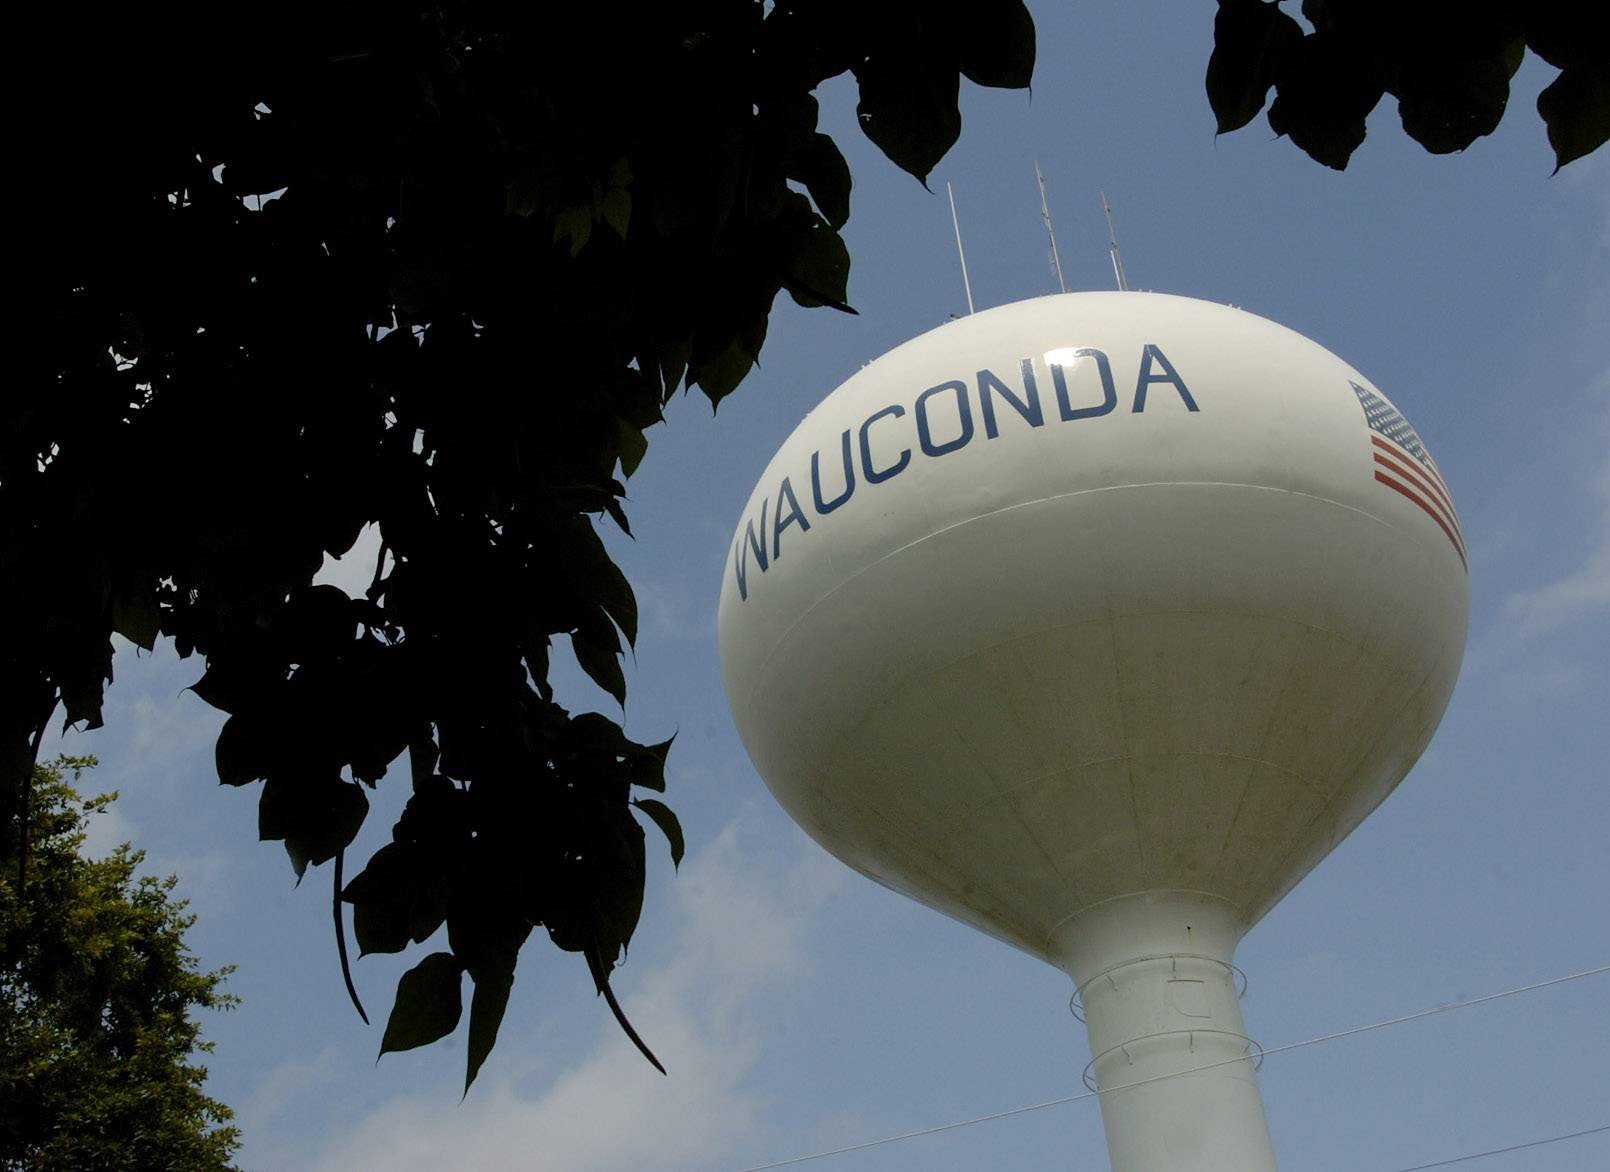 Maxeiner: 'Progress' being made on Wauconda water plan